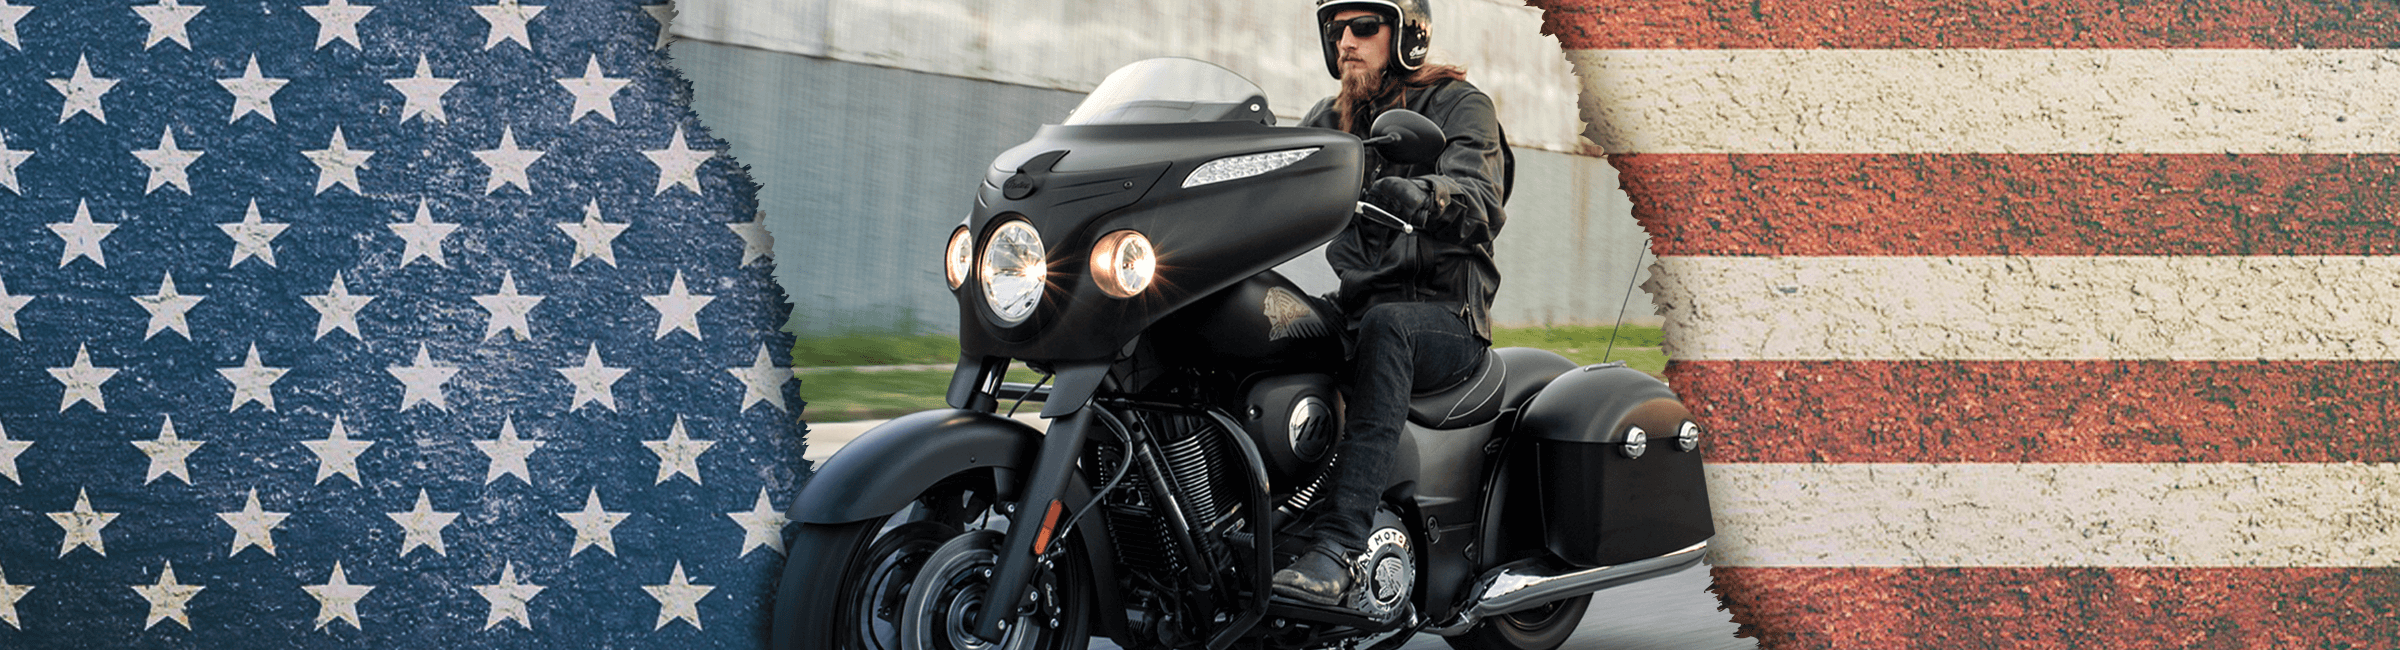 Indian Chieftain Dark horse August 2018 Promotion